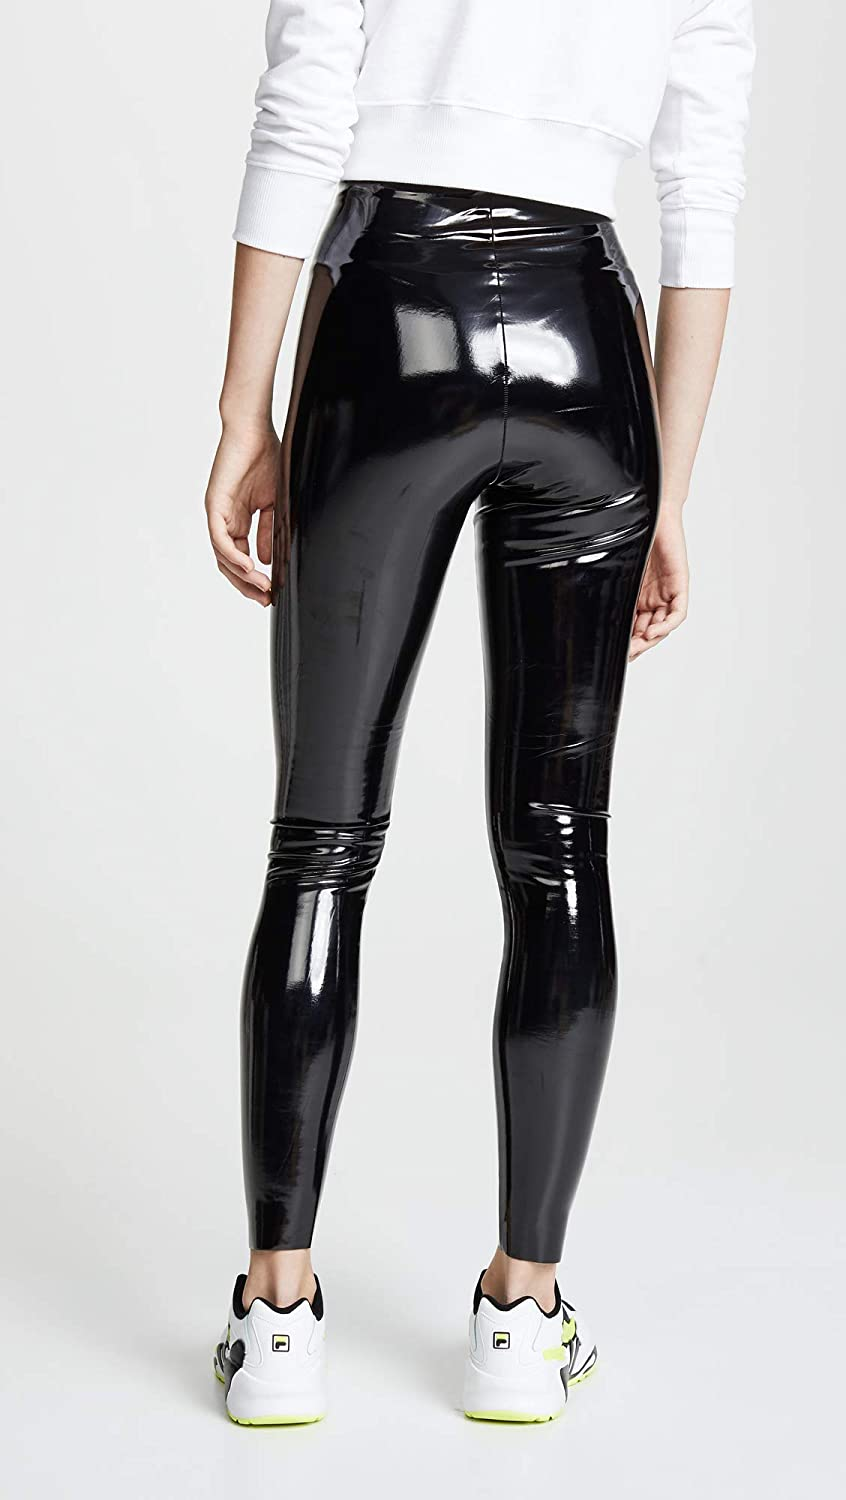 19f16caaeaadb commando Women's Faux Patent Leather Perfect Control Leggings at Amazon  Women's Clothing store: